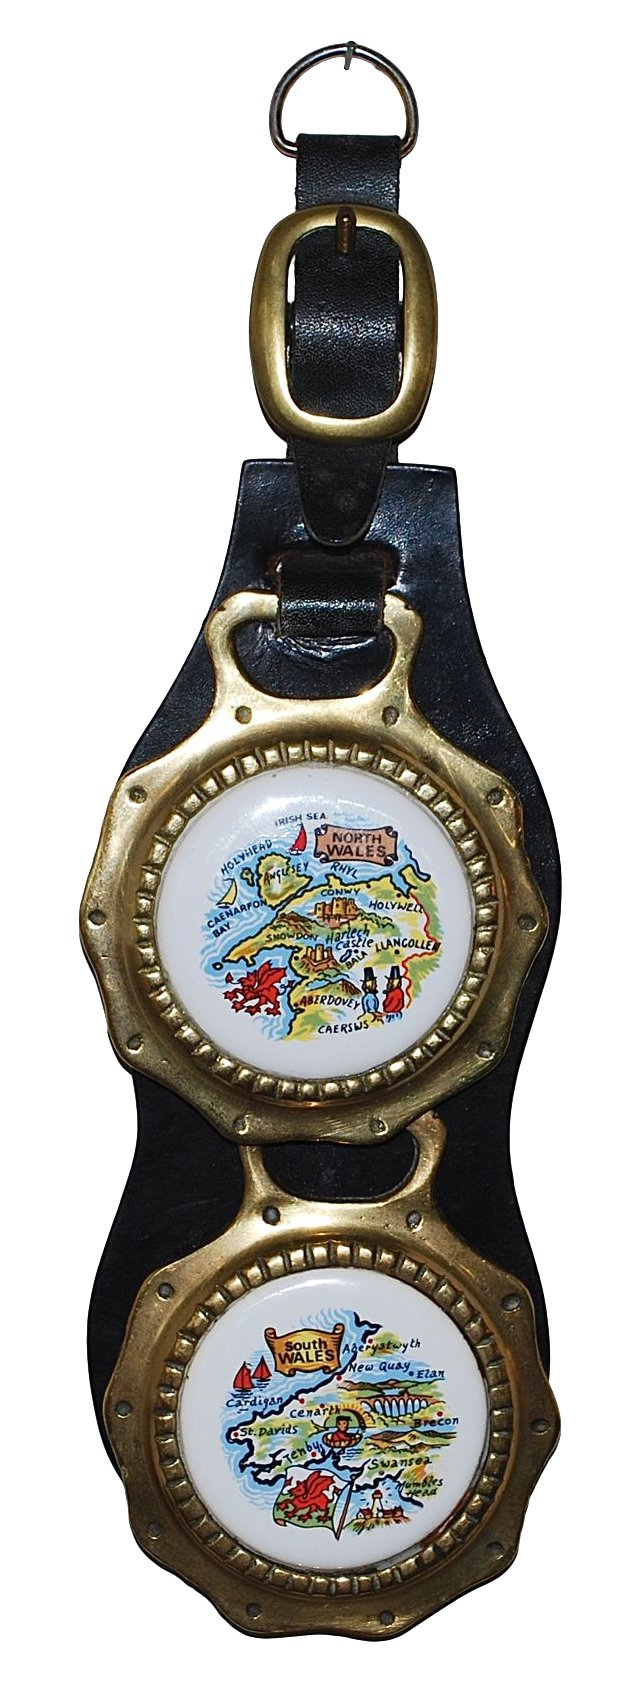 Wales Horse Brass on Leather Strap